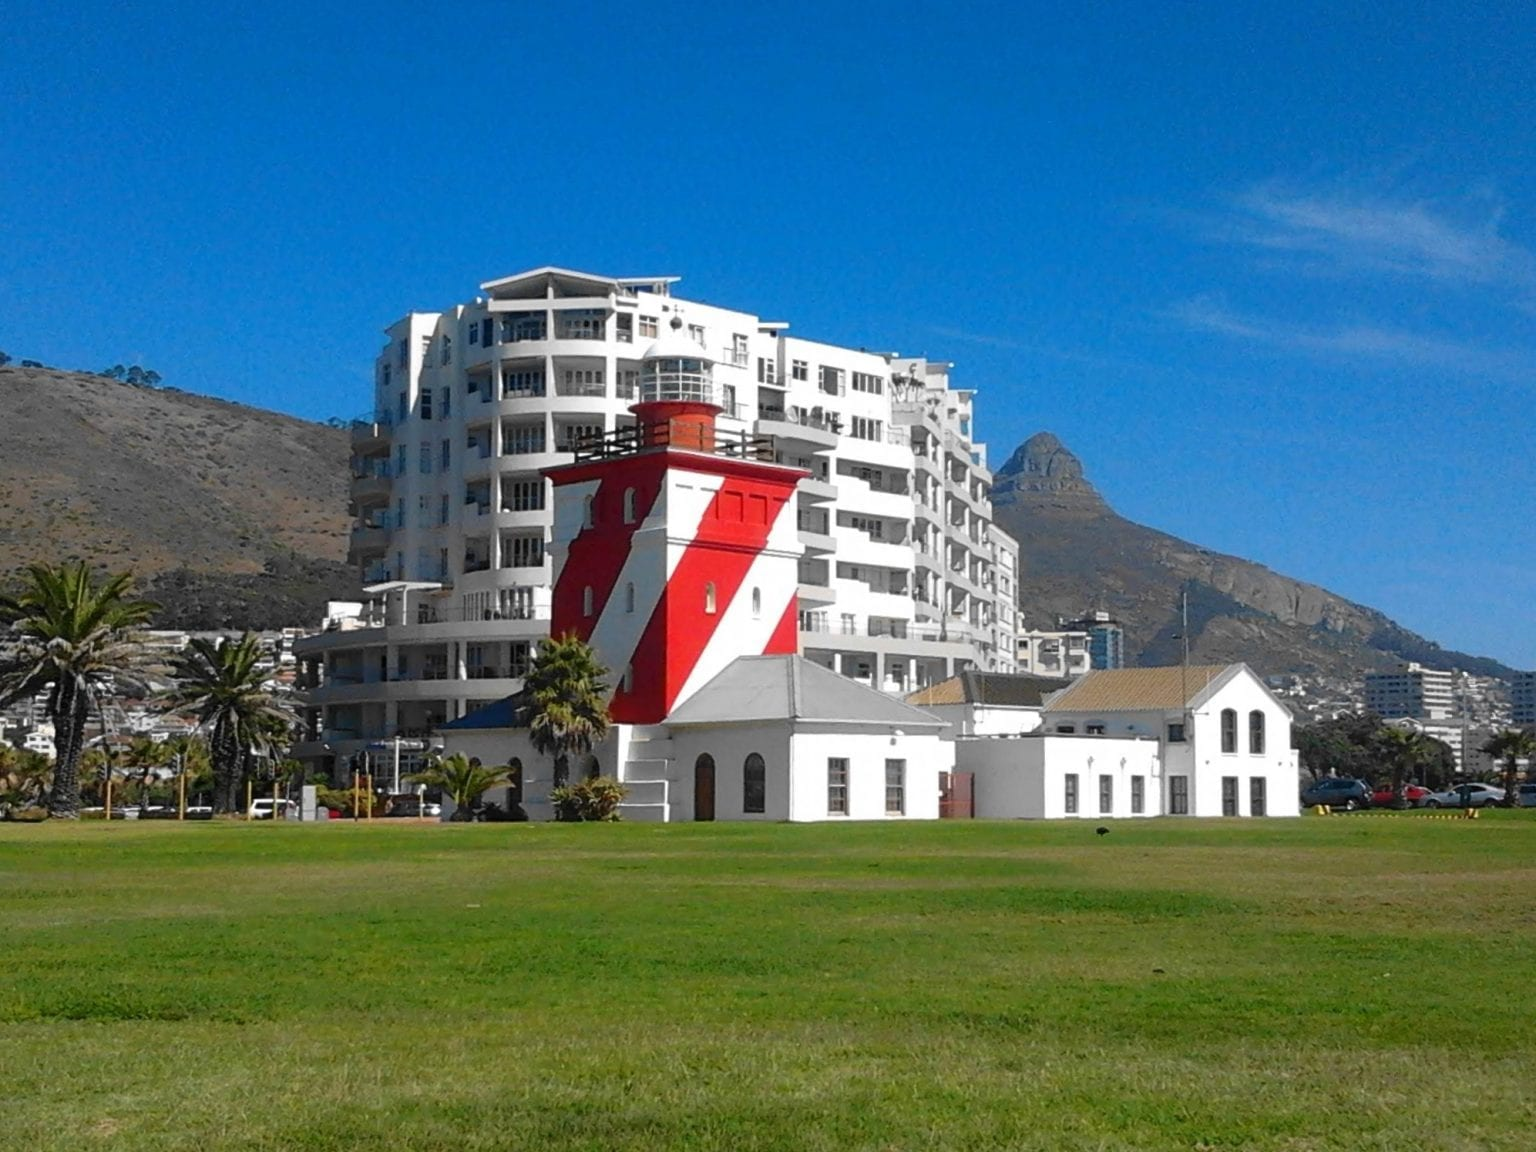 green-point-lighthouse-roadside-attractions-western-cape